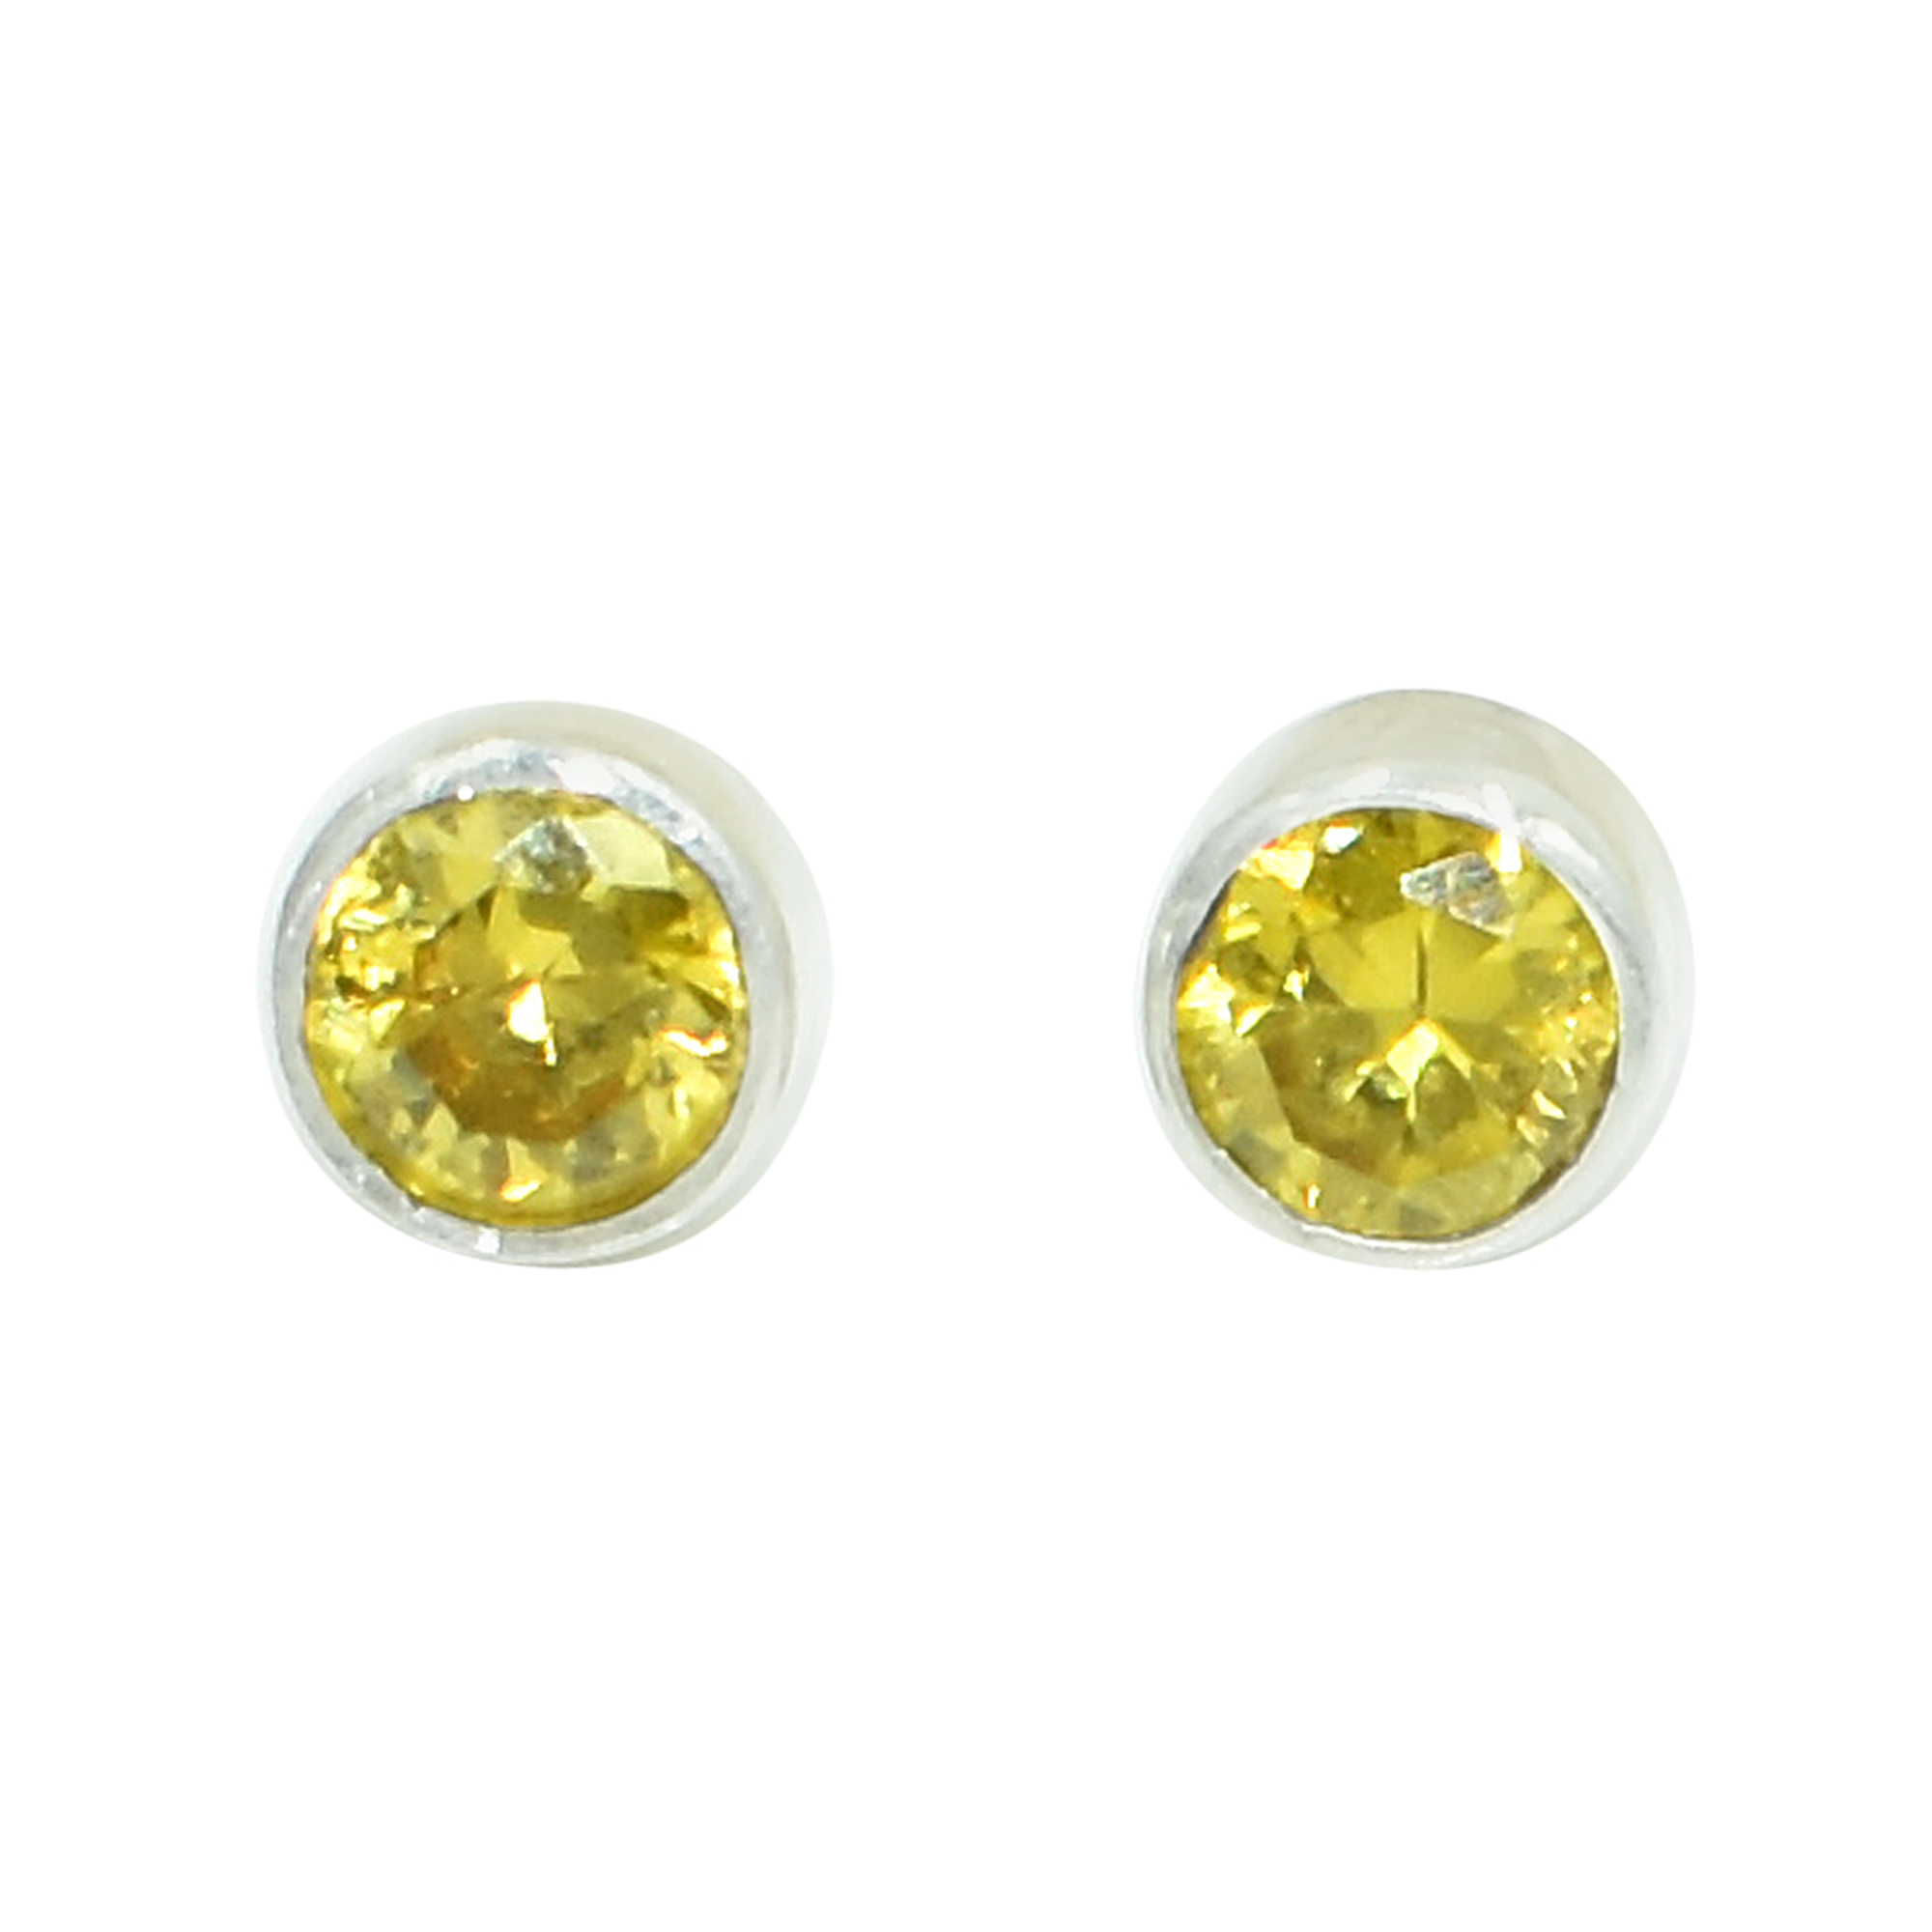 Yellow Color Zircon Gemstone 925 Sterling Silver Post Stud Earring For women & Girls